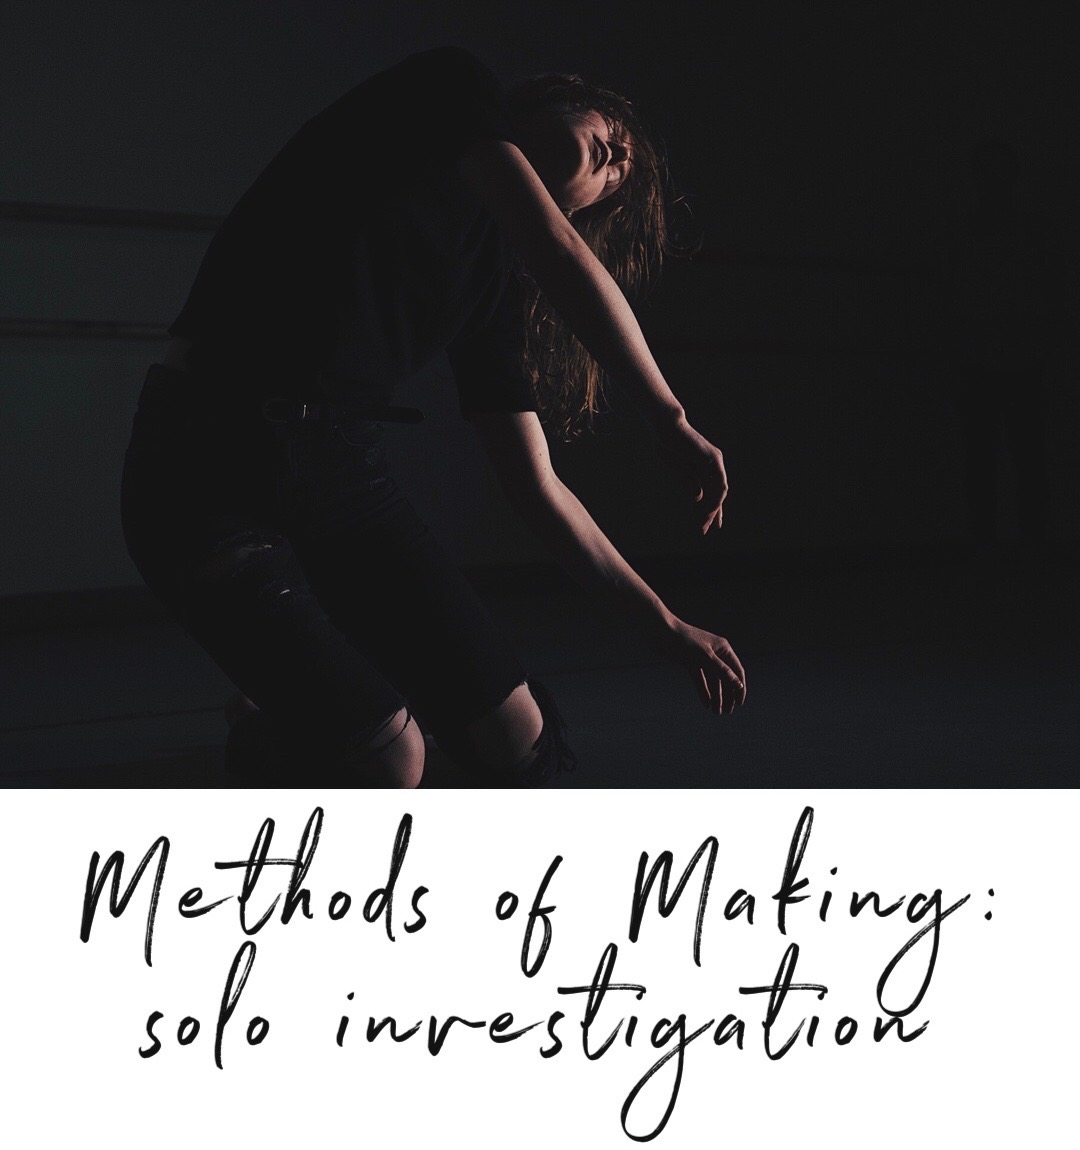 Methods of Making: solo investigation